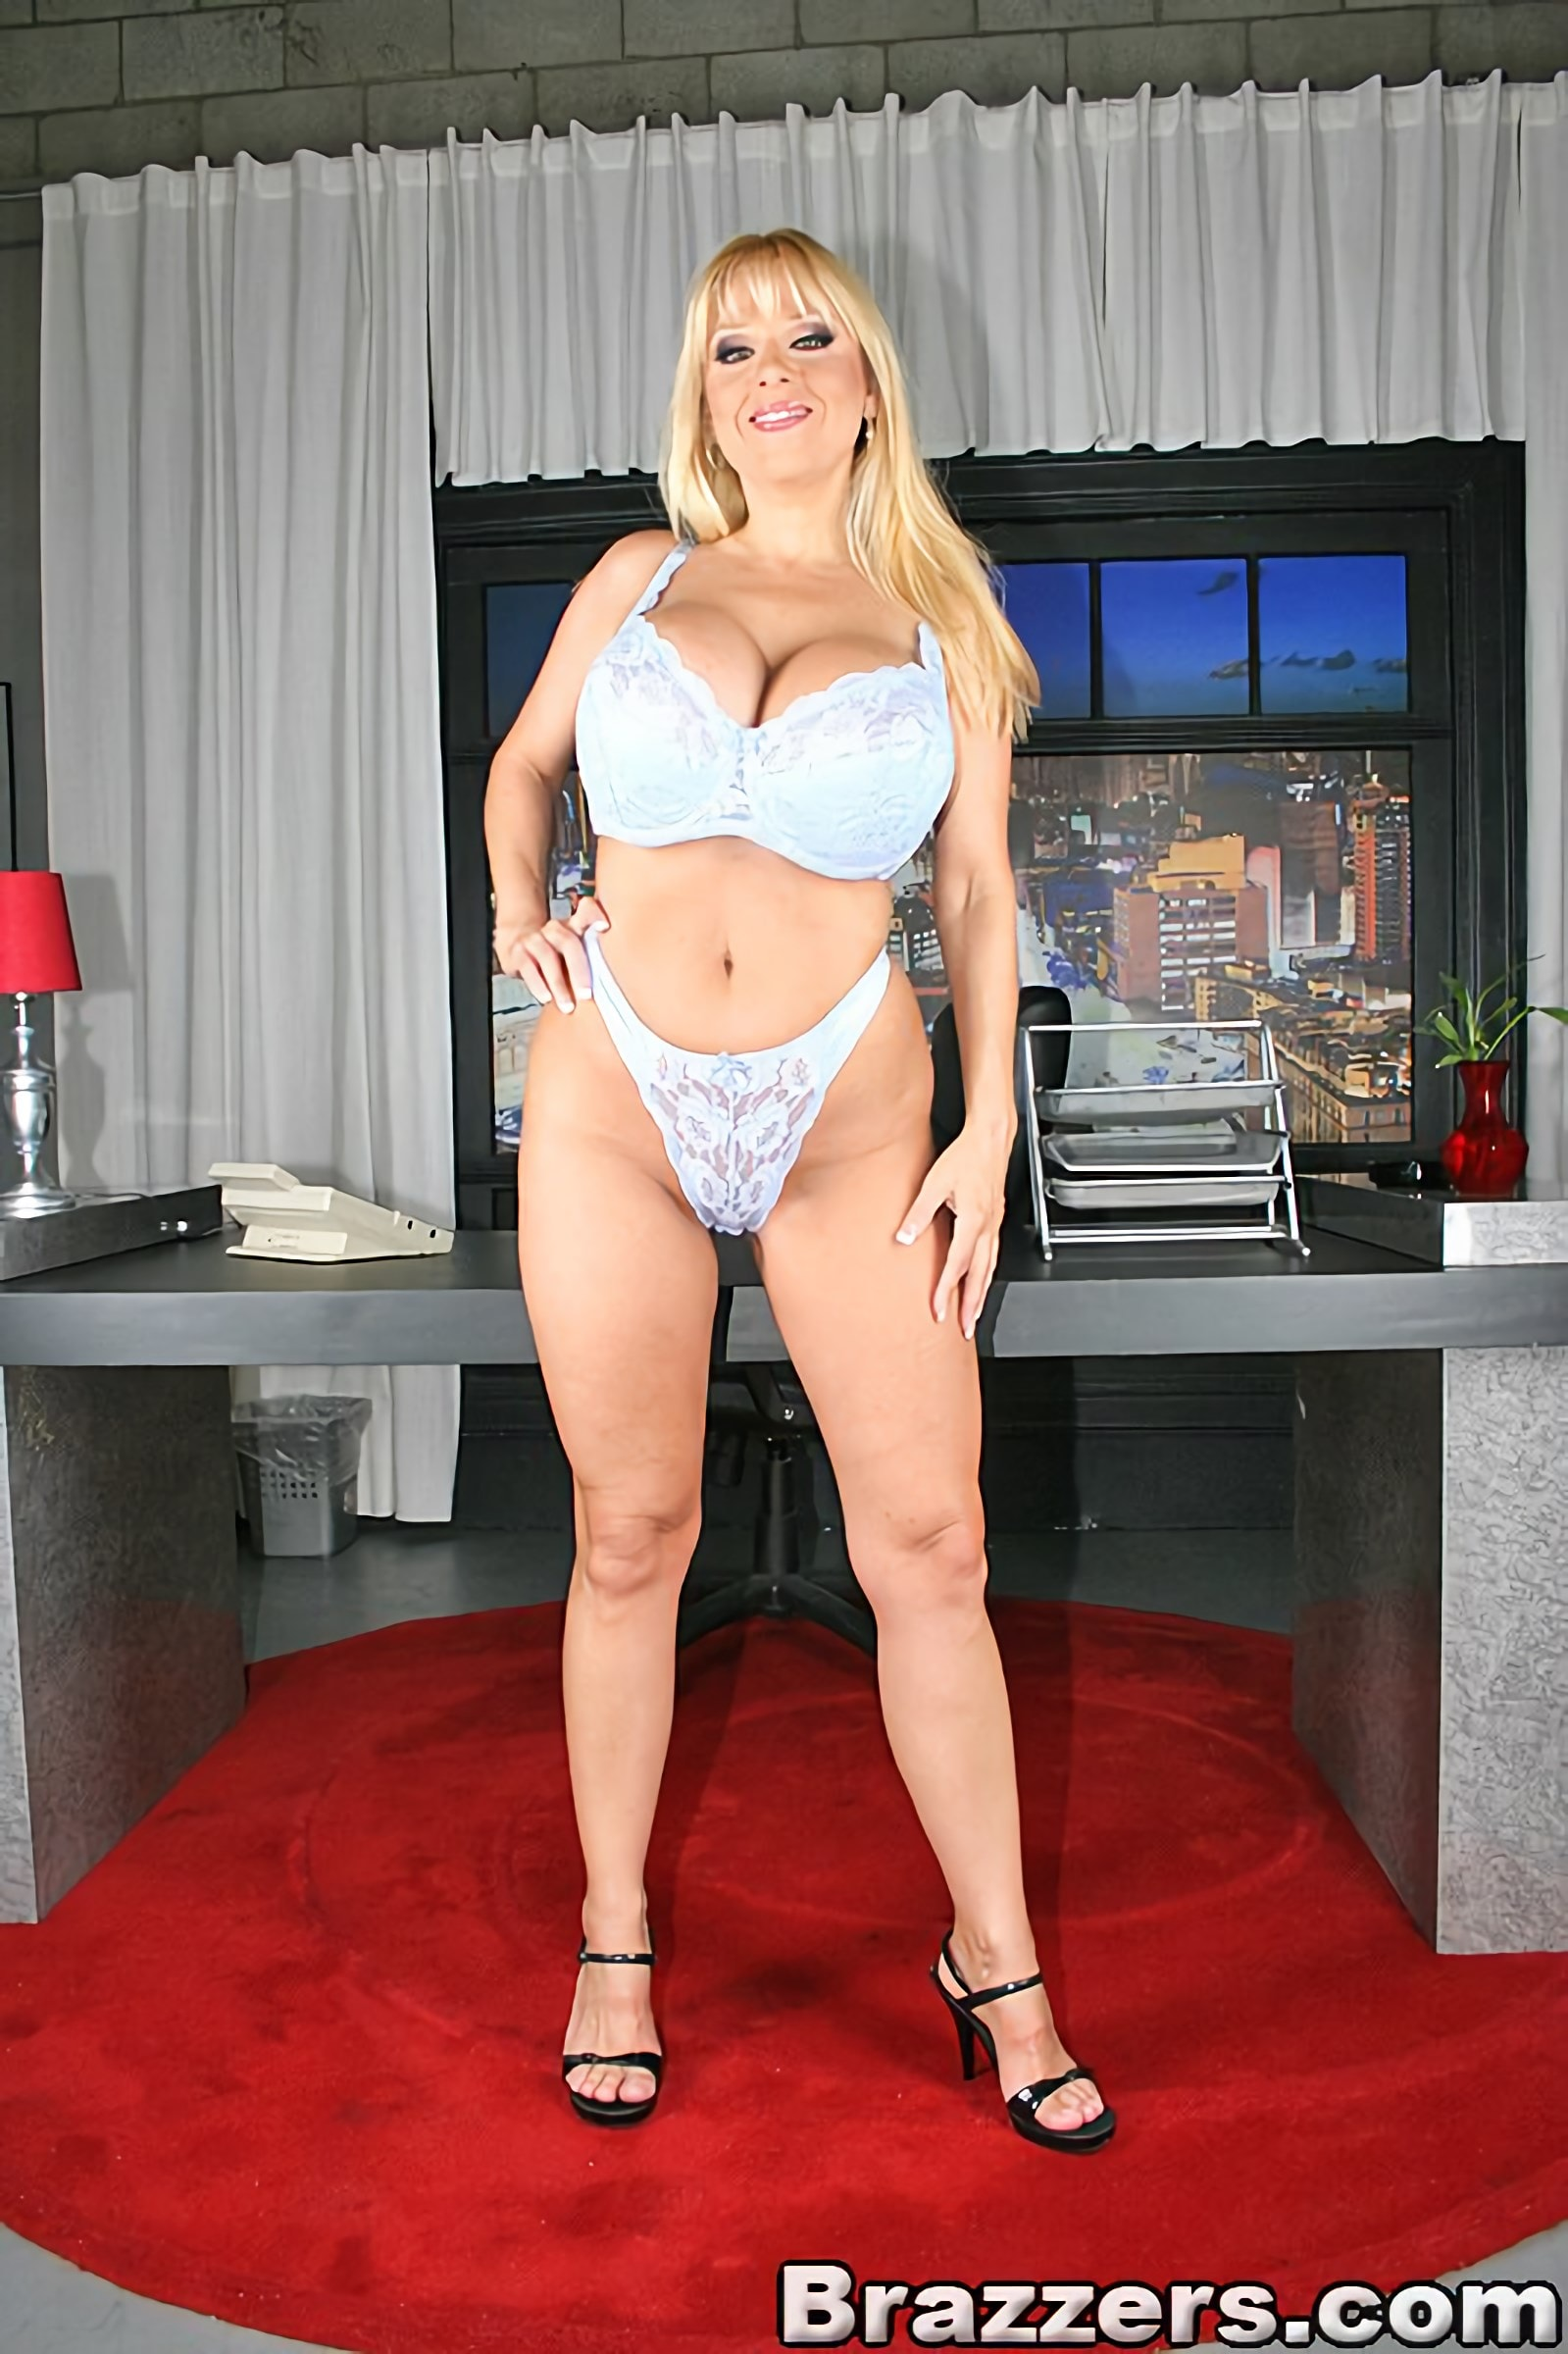 Big Tits At Work Harmony Bliss 8